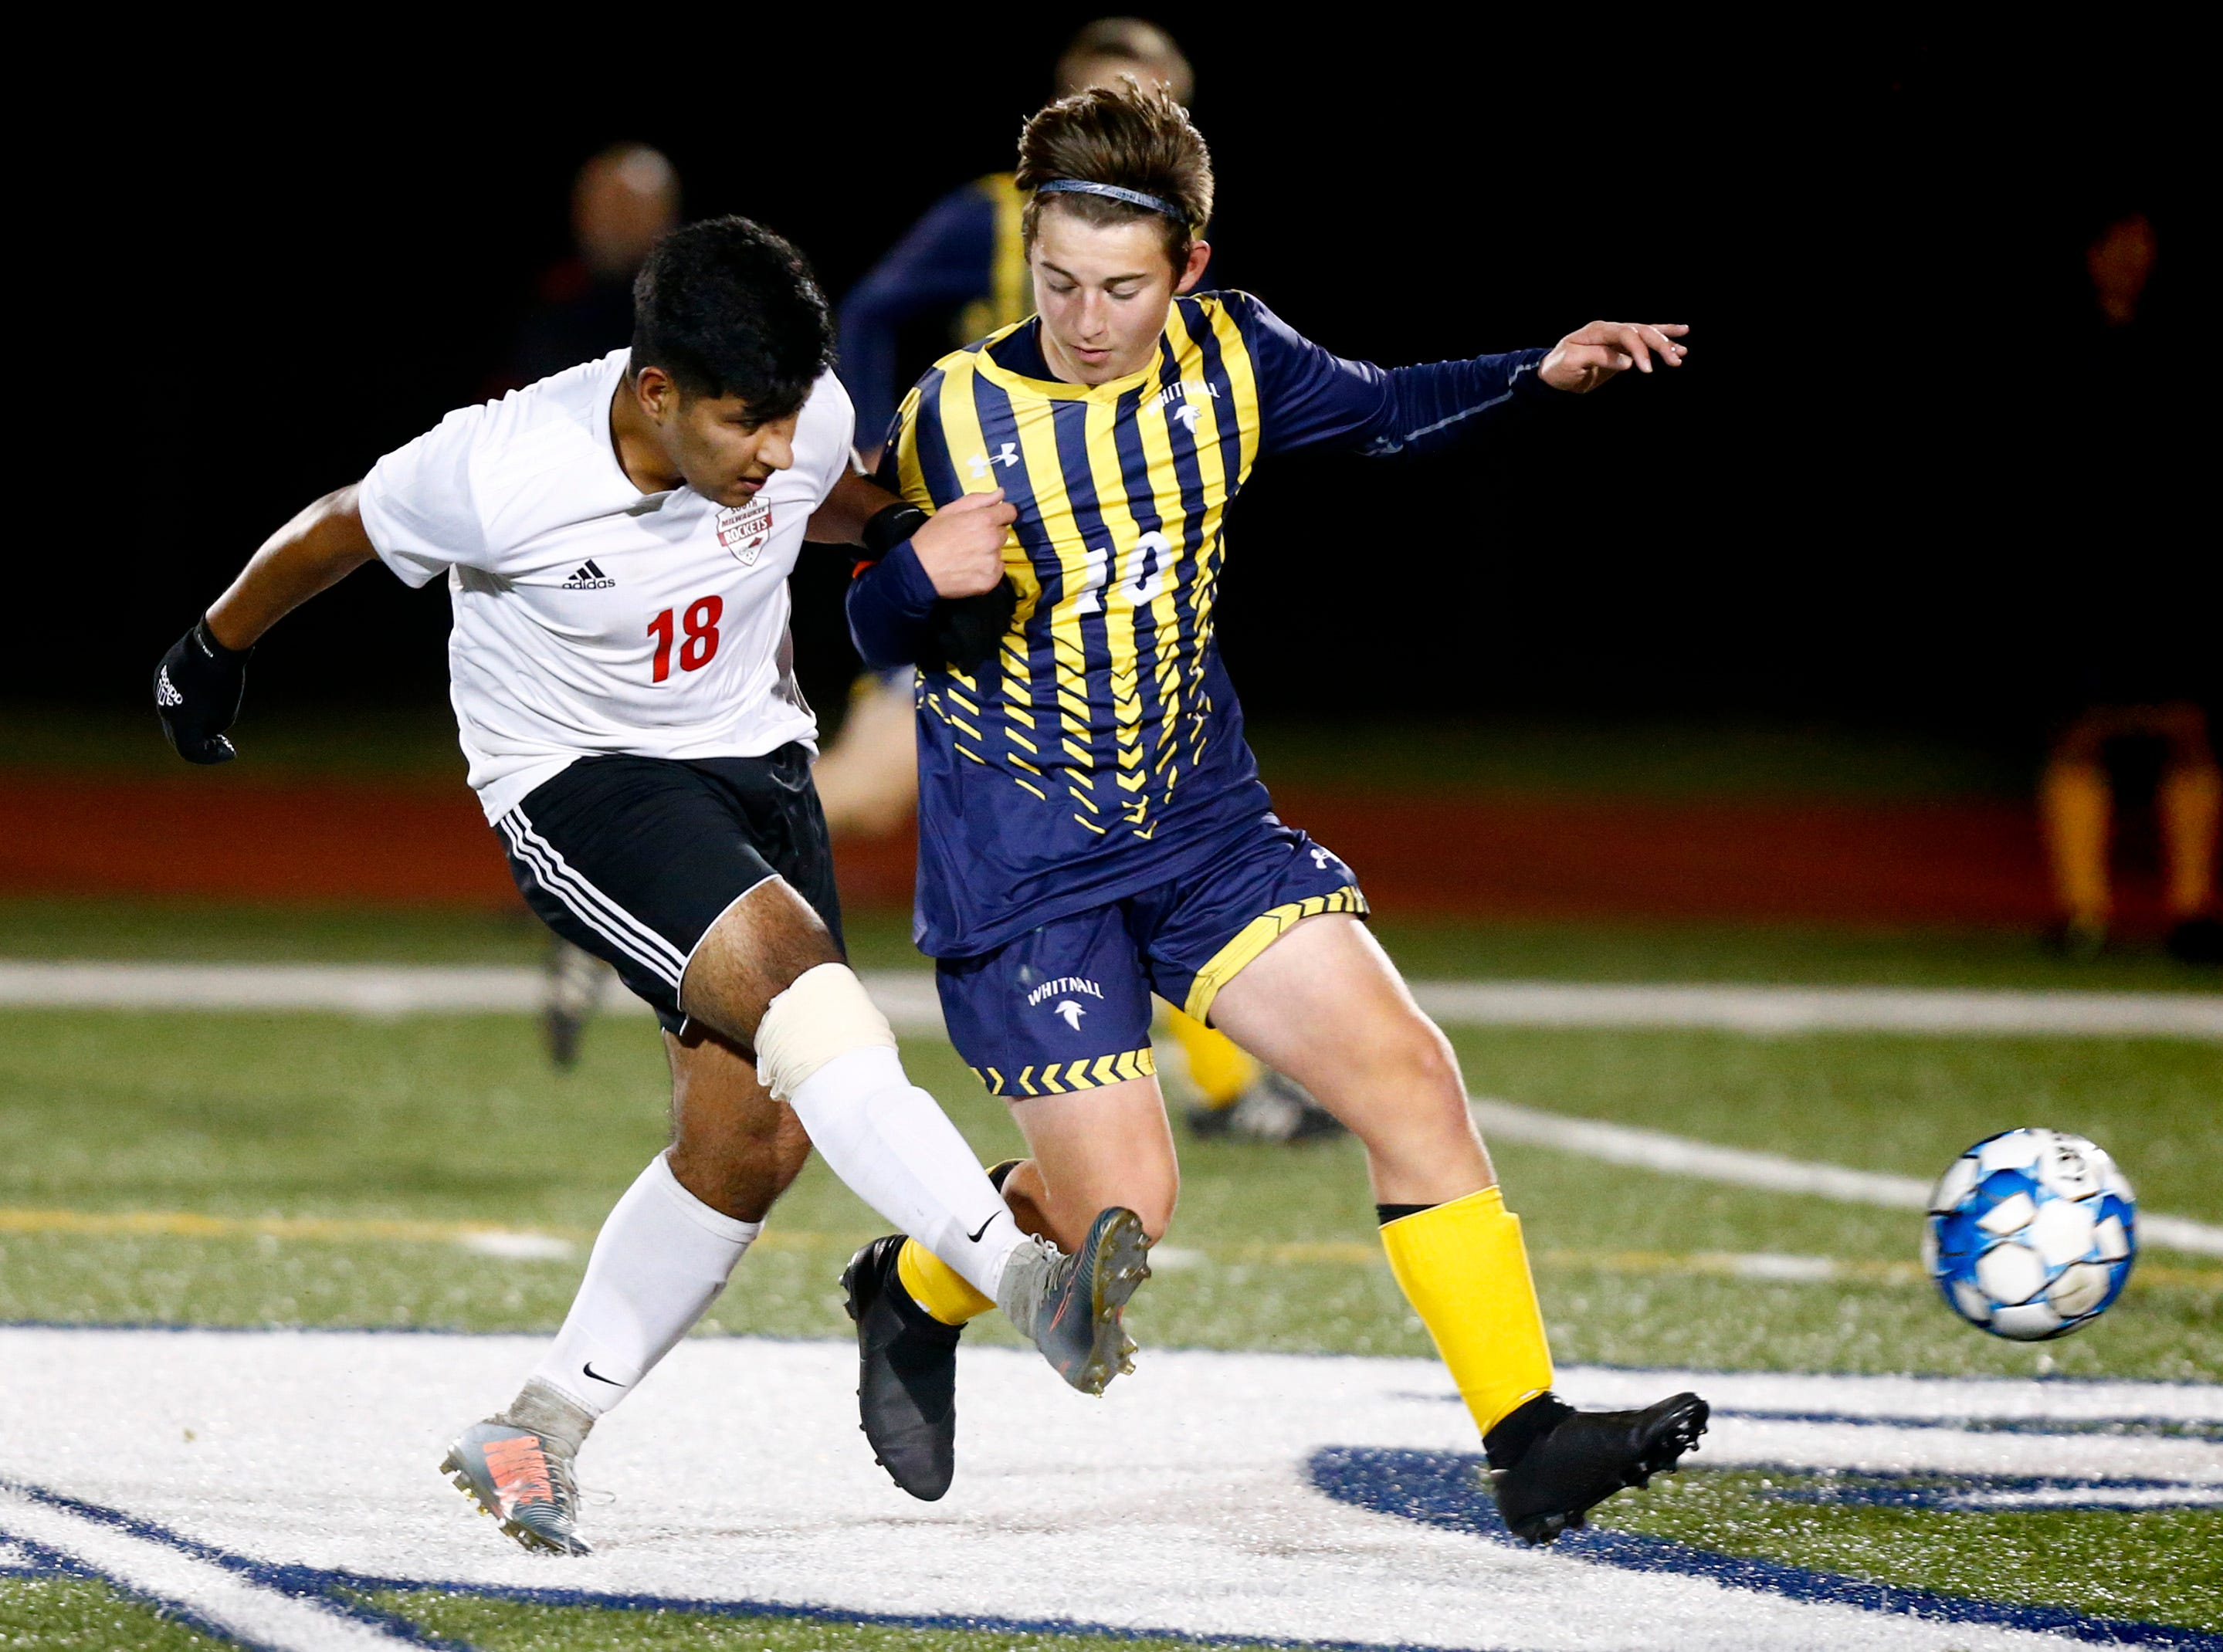 South Milwaukee's Oscar Calderon sends the ball past Whitnall's Brady Korpal in WIAA semi-regional play at Whitnall on Oct. 16.